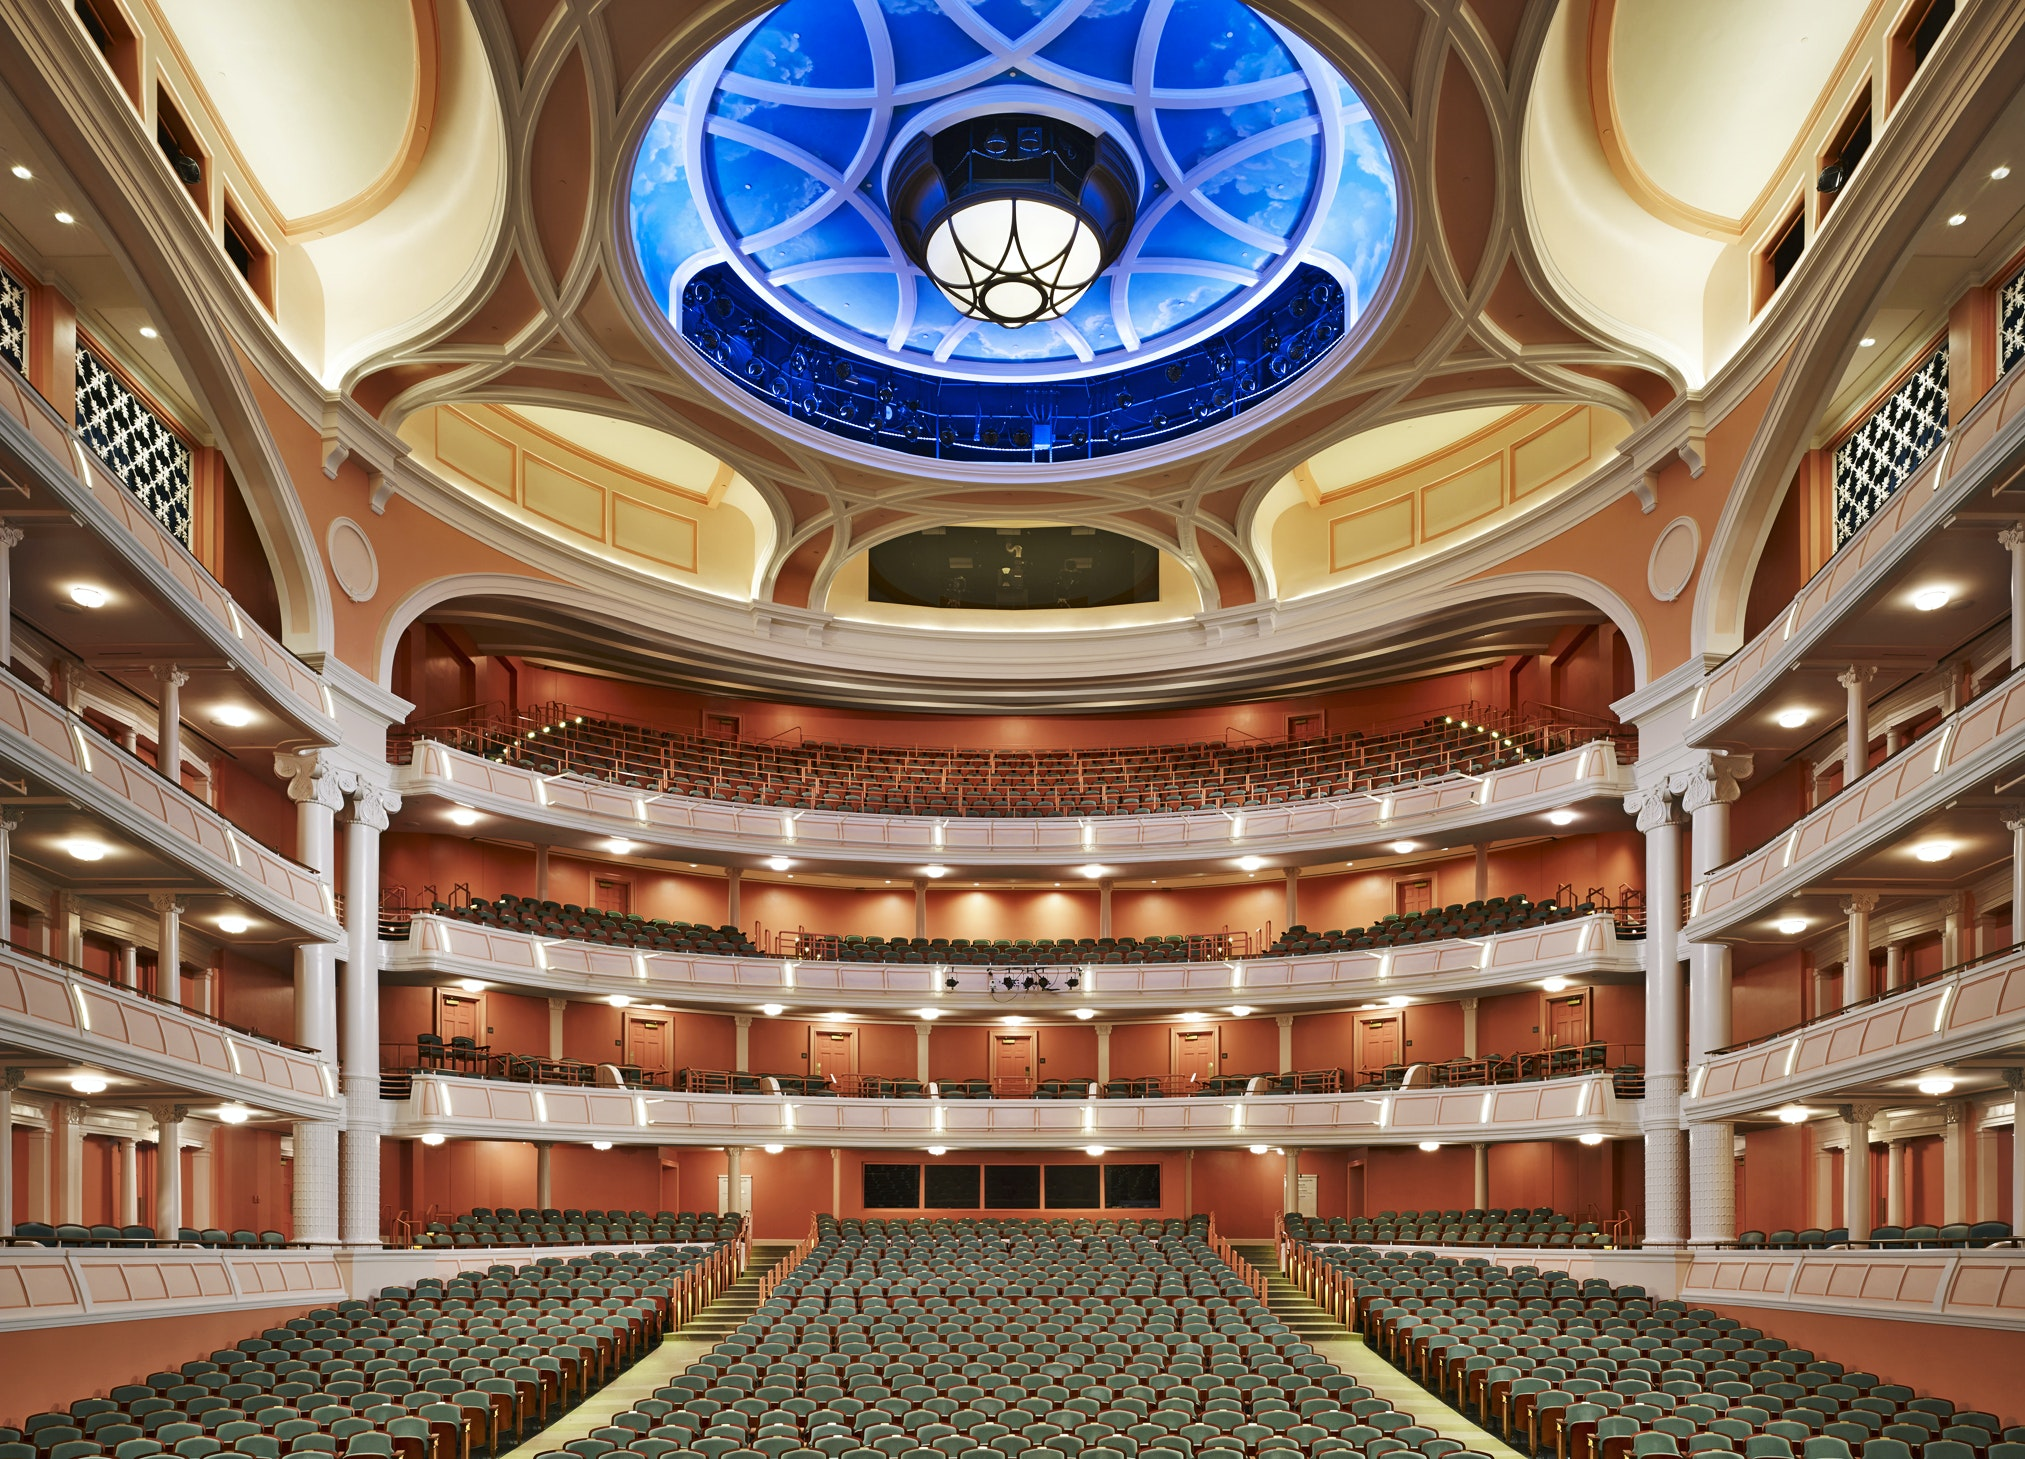 The Charleston Gaillard Center hosts the Charleston Symphony Orchestra, festivals, and other performing arts functions.